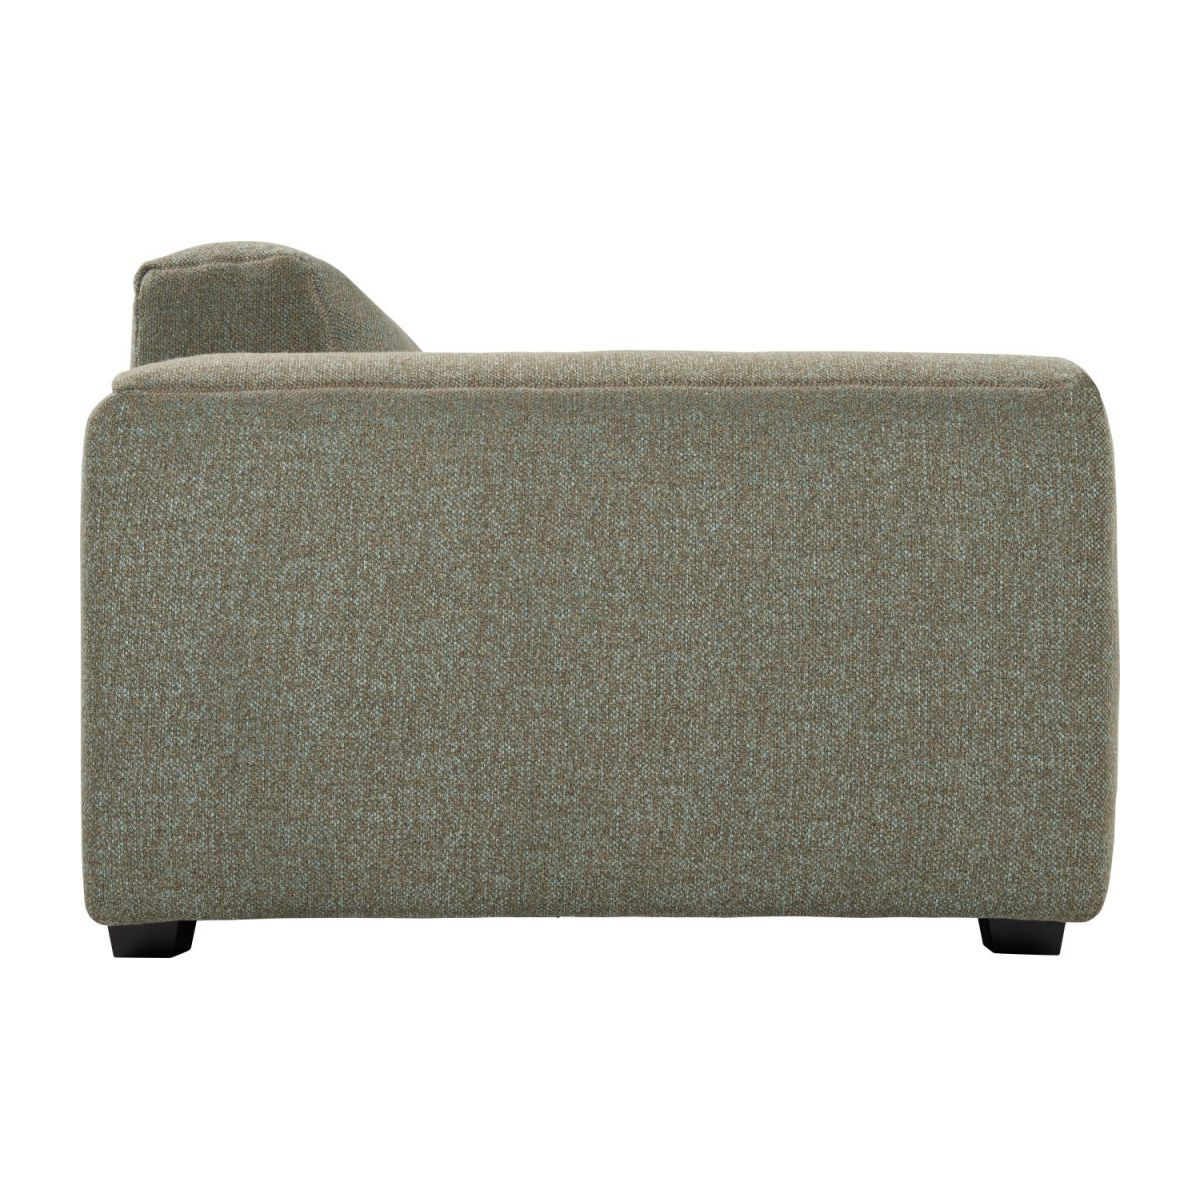 4 seater sofa in Lecce fabric, slade grey n°4